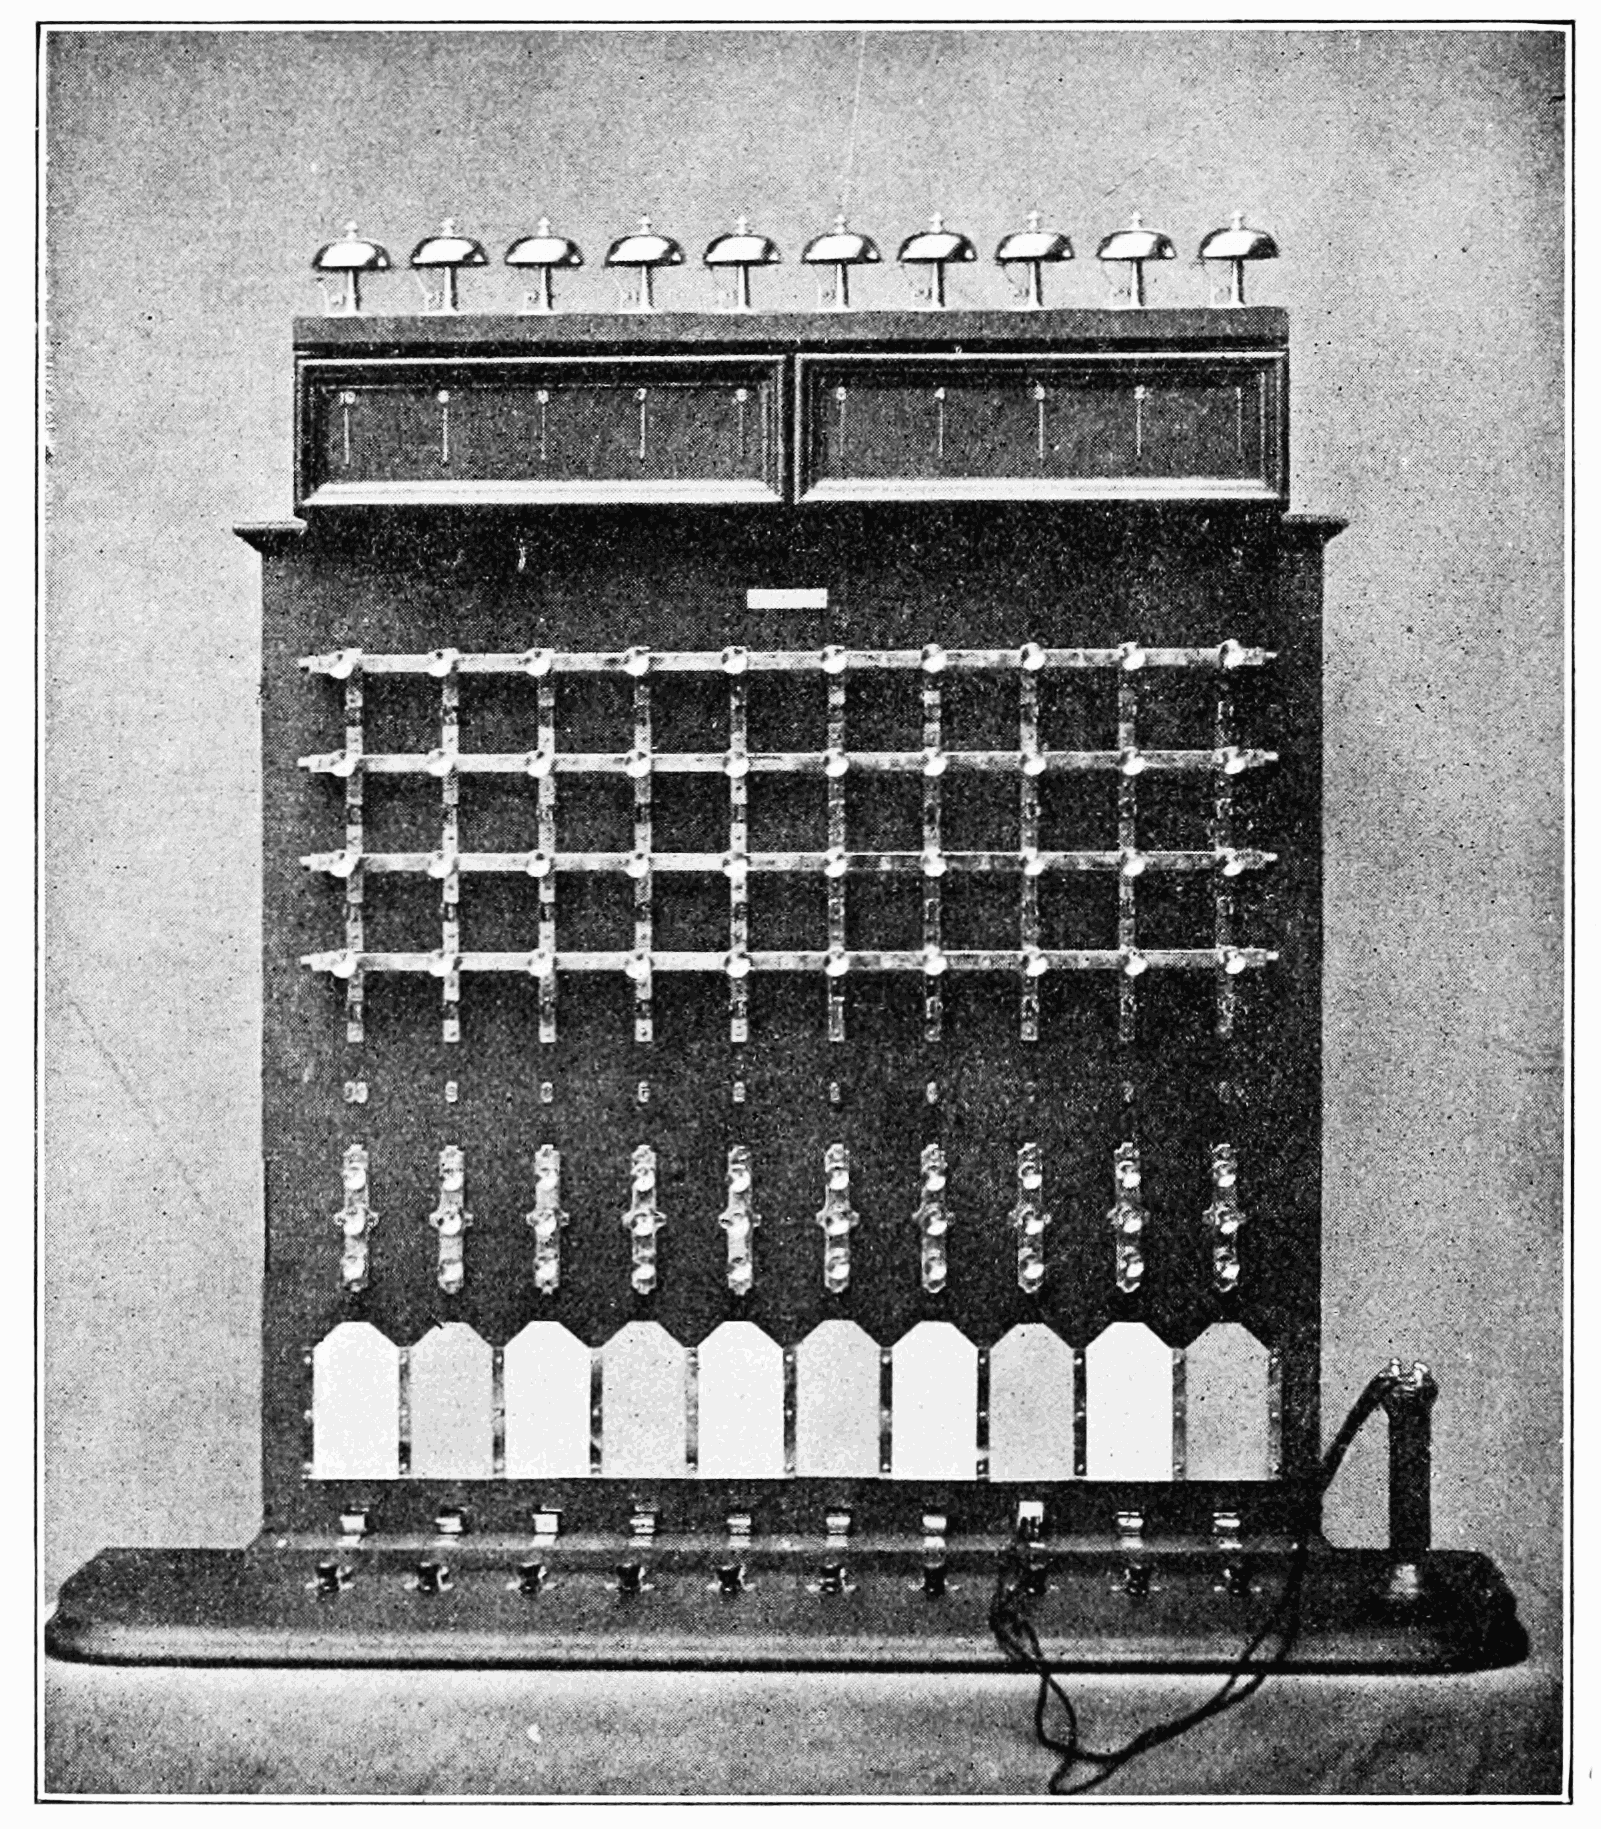 image 1907 forty wire telephone switchboard